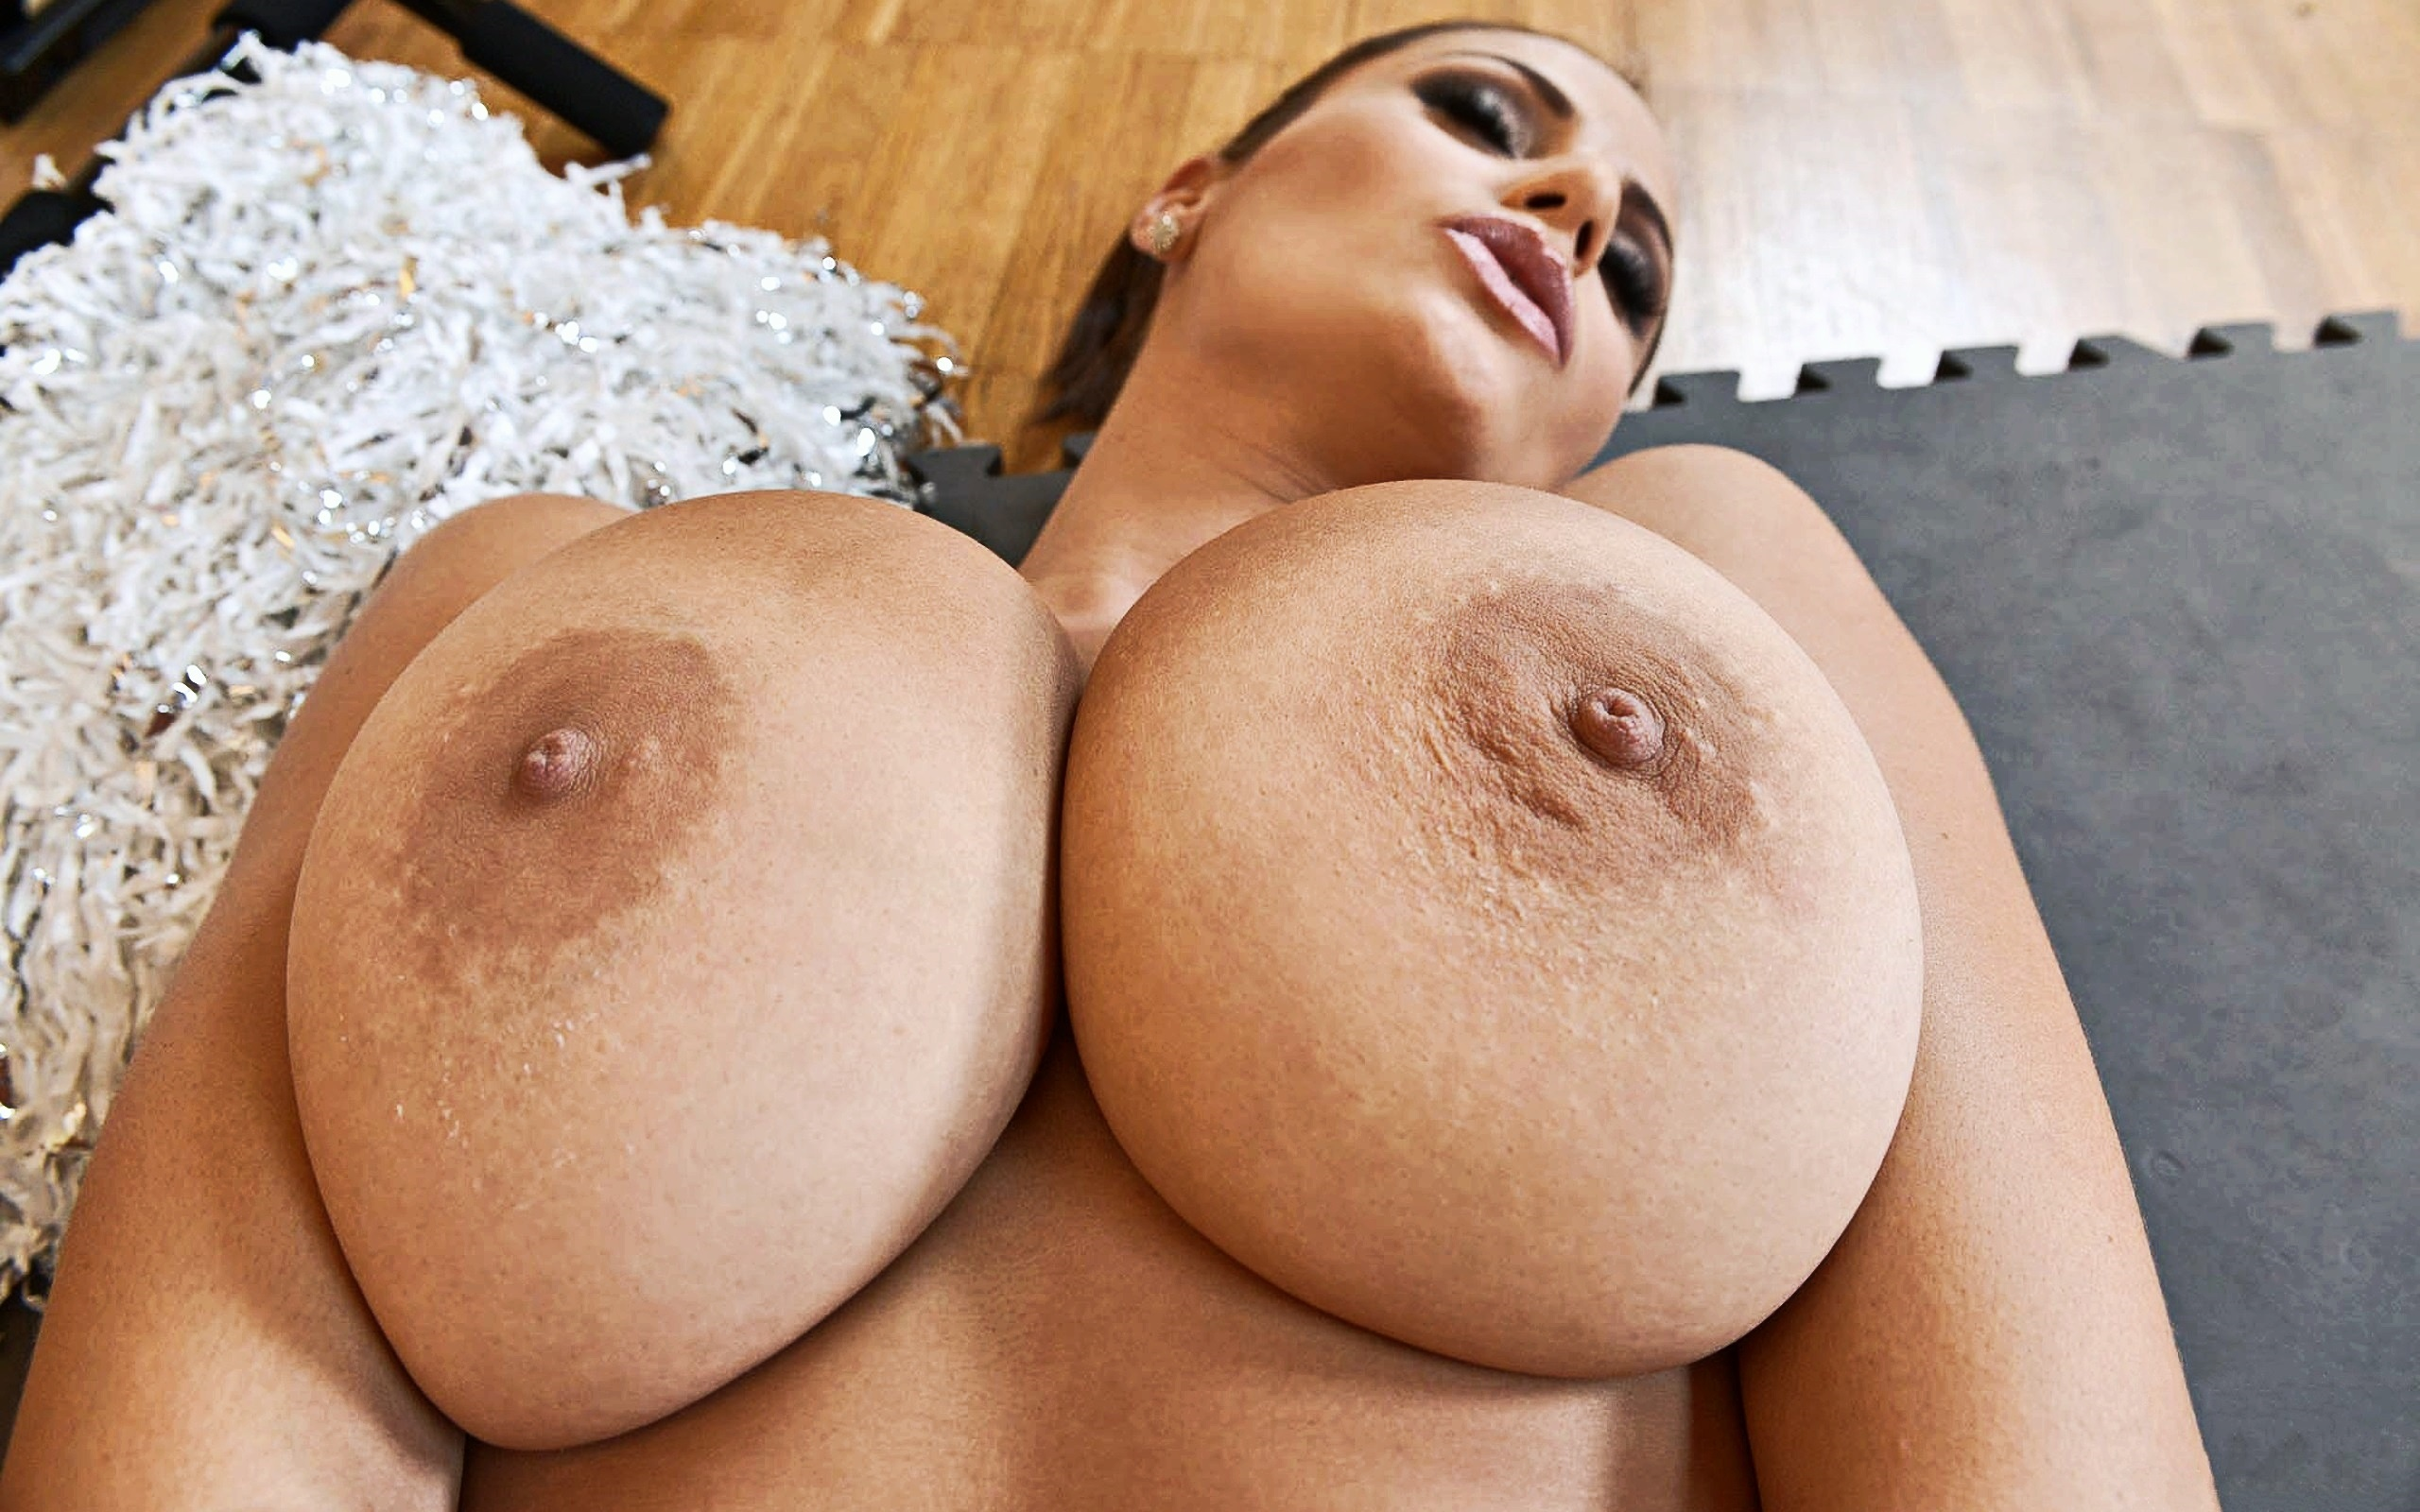 Wallpaper Sensual Jane, Pornstar, Amazing, Big Boobs, Huge -4471